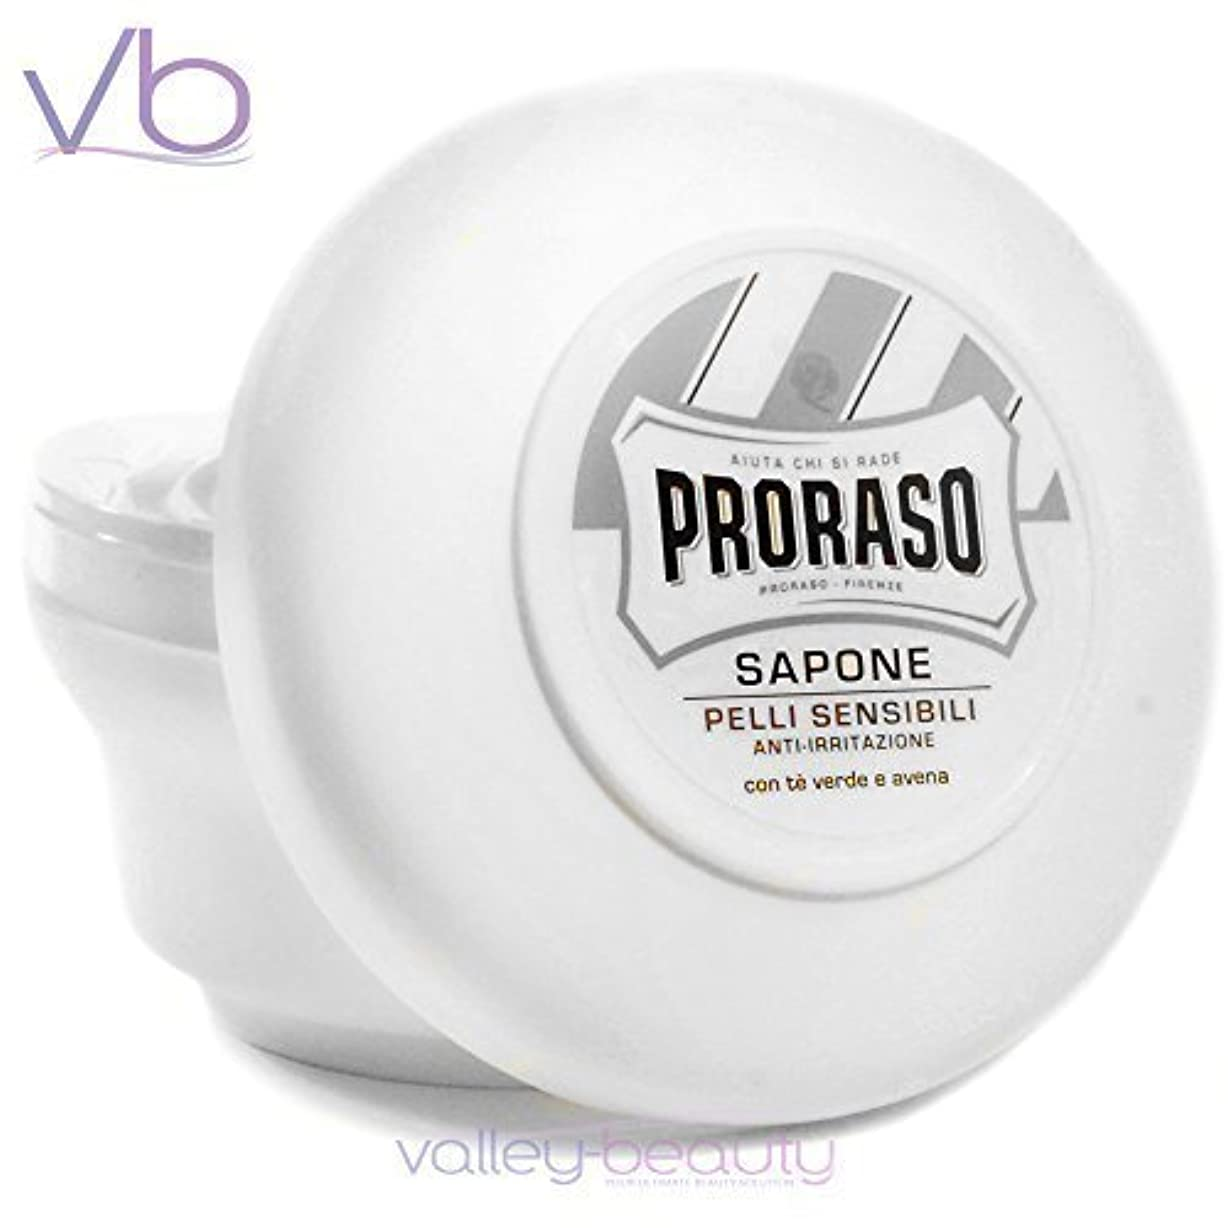 Proraso Shaving Soap with Green Tea and Oat - Ultra Sensitive Skin 150ml/5.2oz by Proraso [並行輸入品]